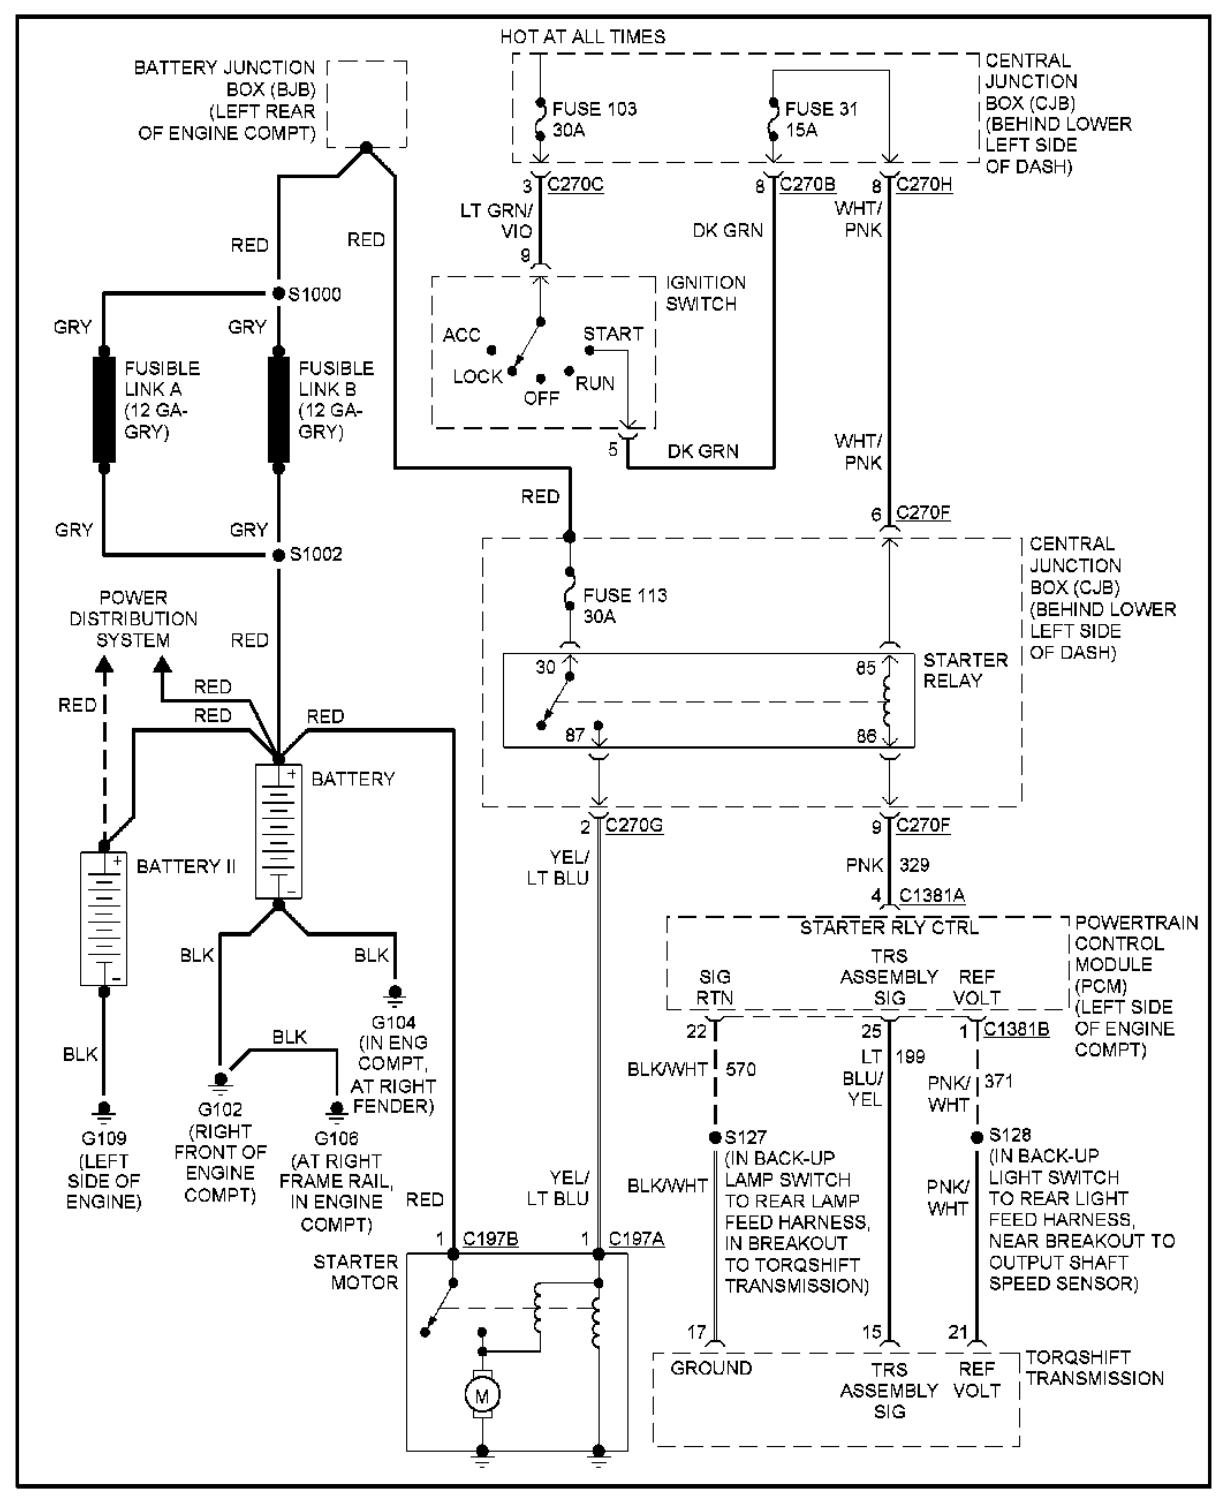 where could i find a wiring diagram for a 2008 ford f